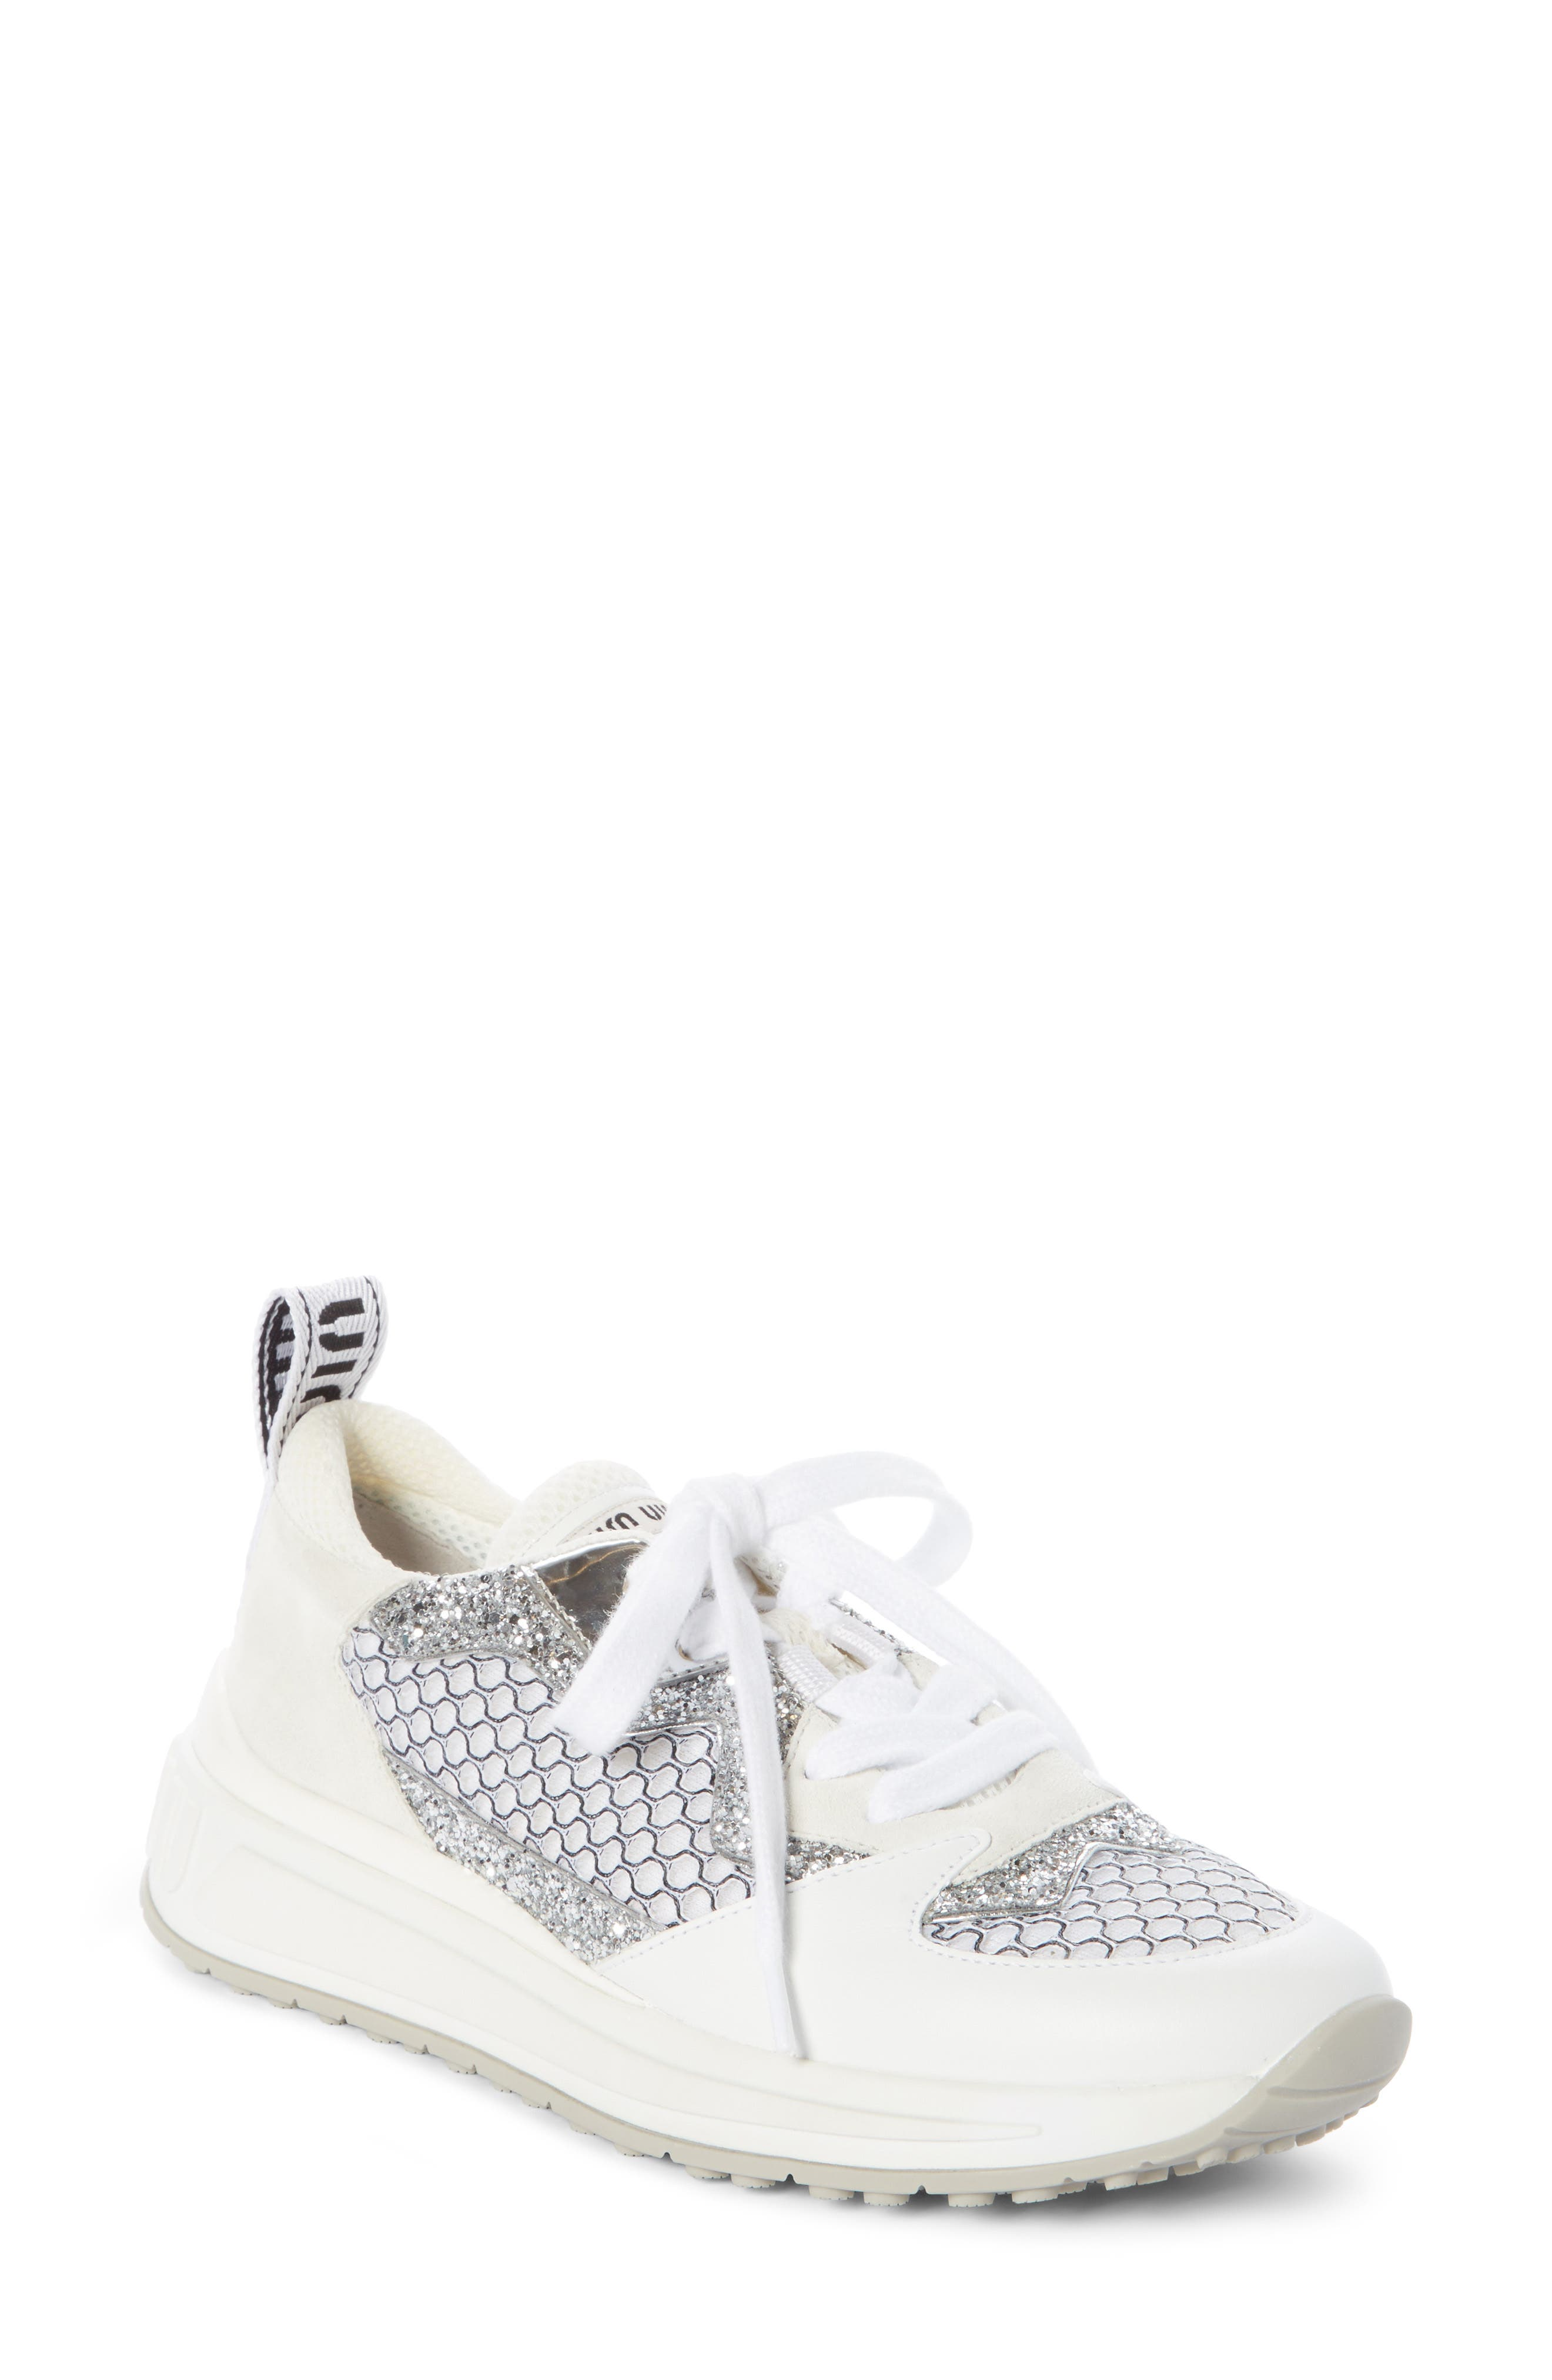 Mixed Media Platform Sneakers in White/ Silver